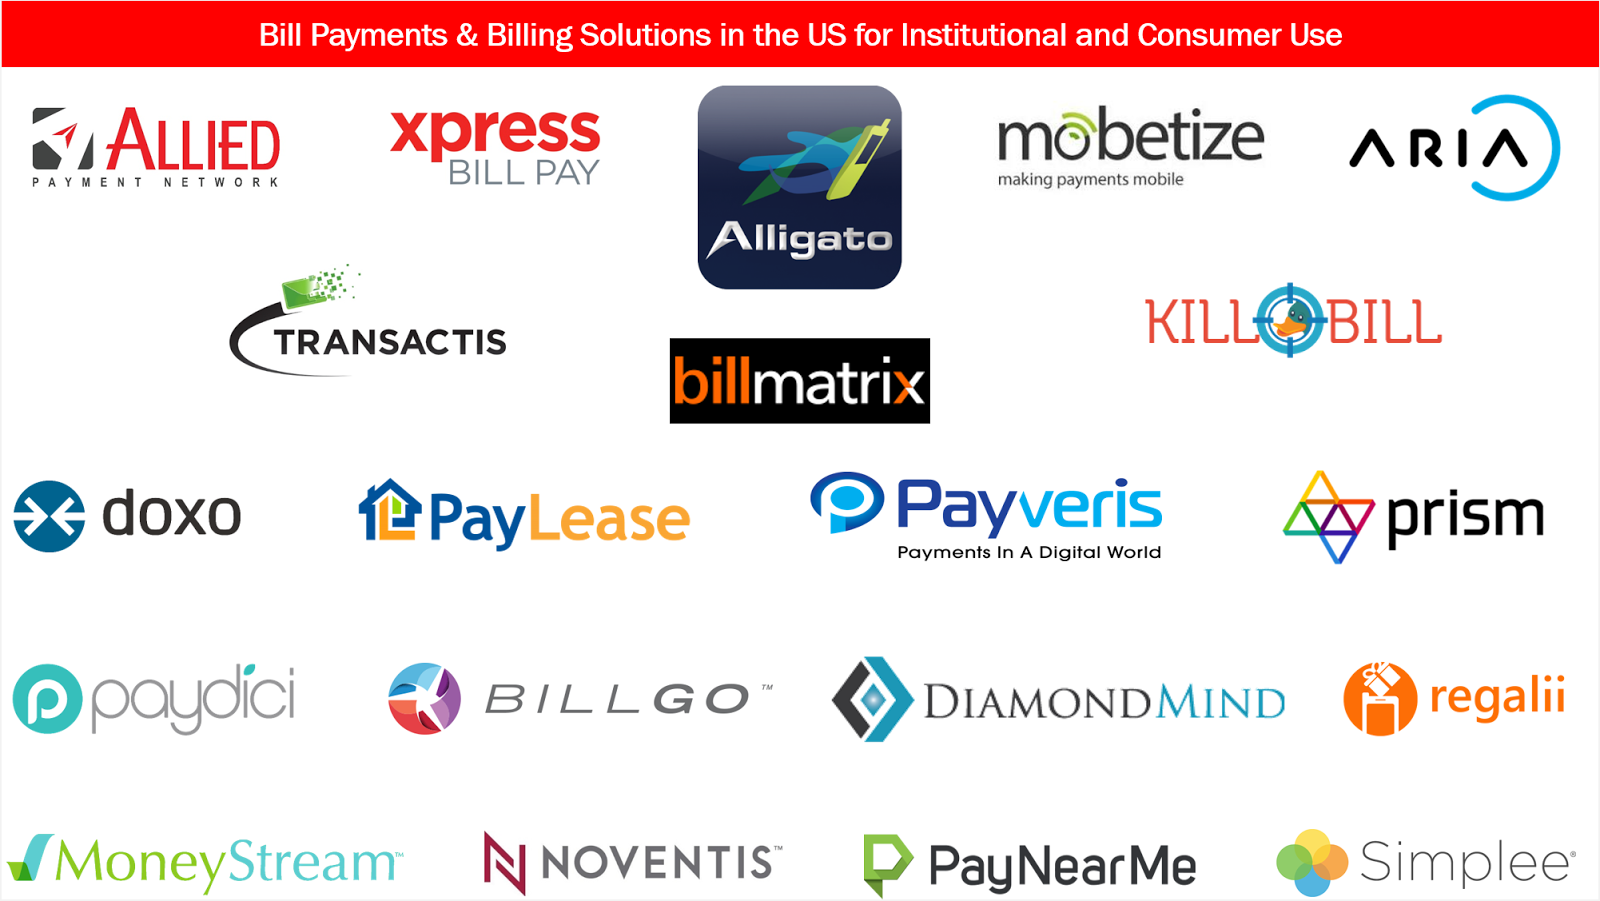 Bill Payments & Billing Solutions in the US for Institutional and Consumer Use